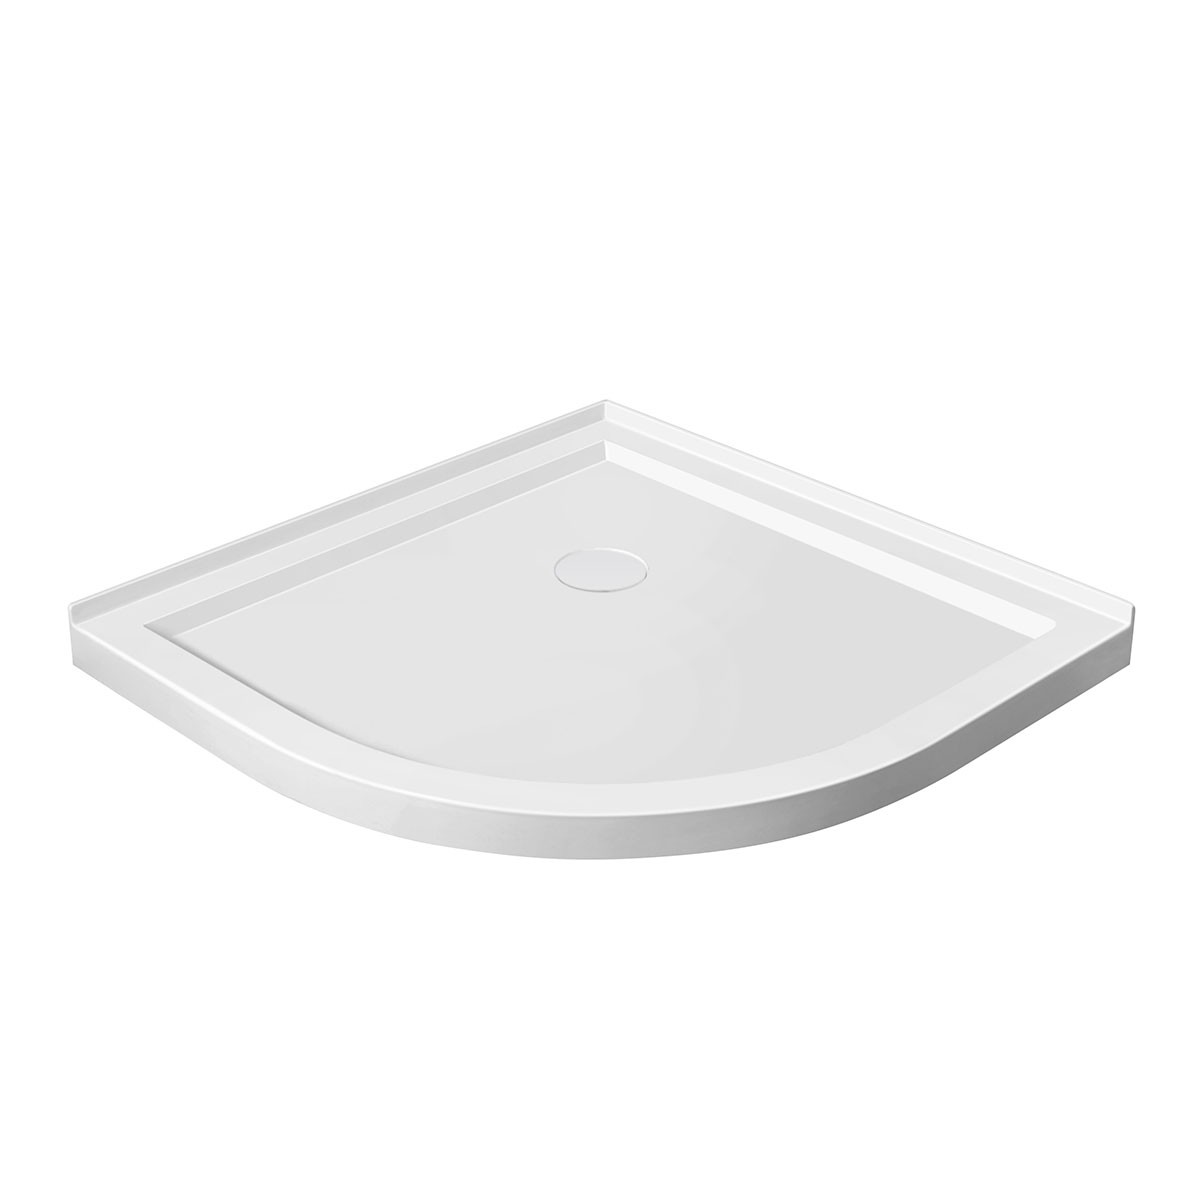 36 x 36 In Round Shower Base for Corner Installation (DK-STA-18006)